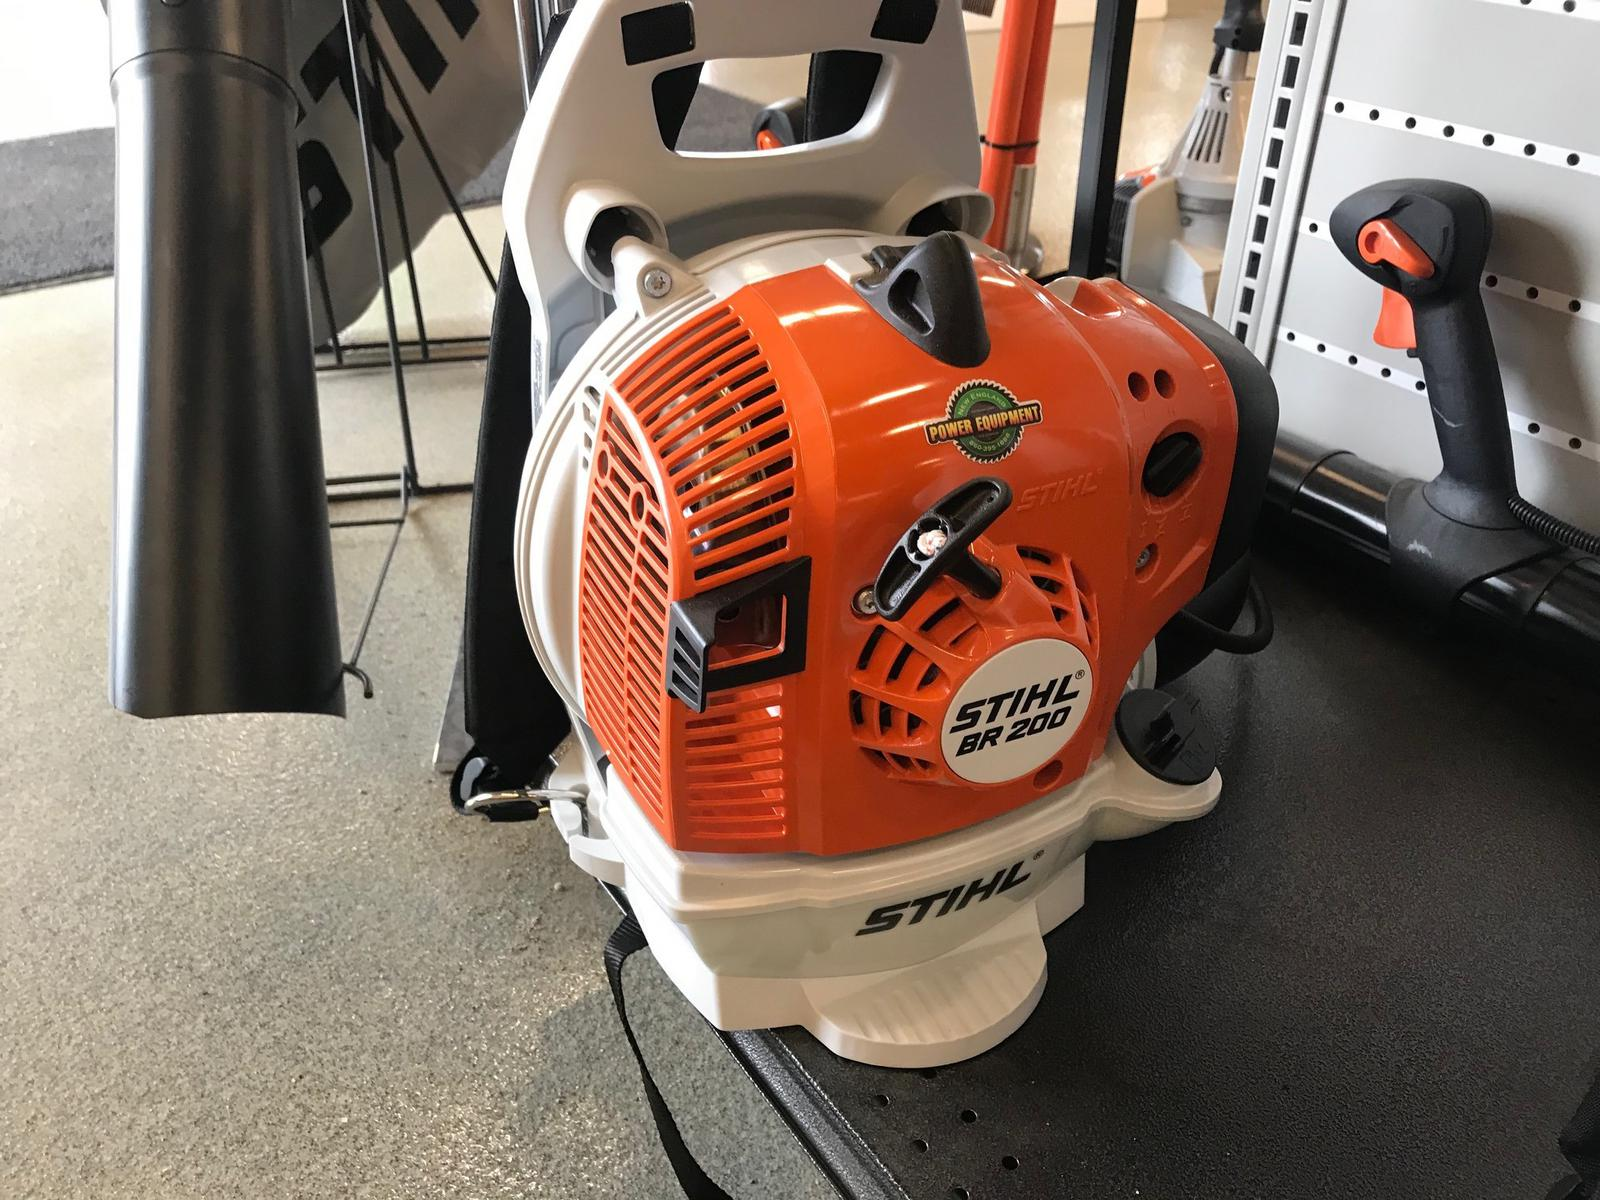 2019 Stihl Br 200 For Sale In Old Saybrook Ct New England Power Equipment Old Saybrook Ct 860 395 1688